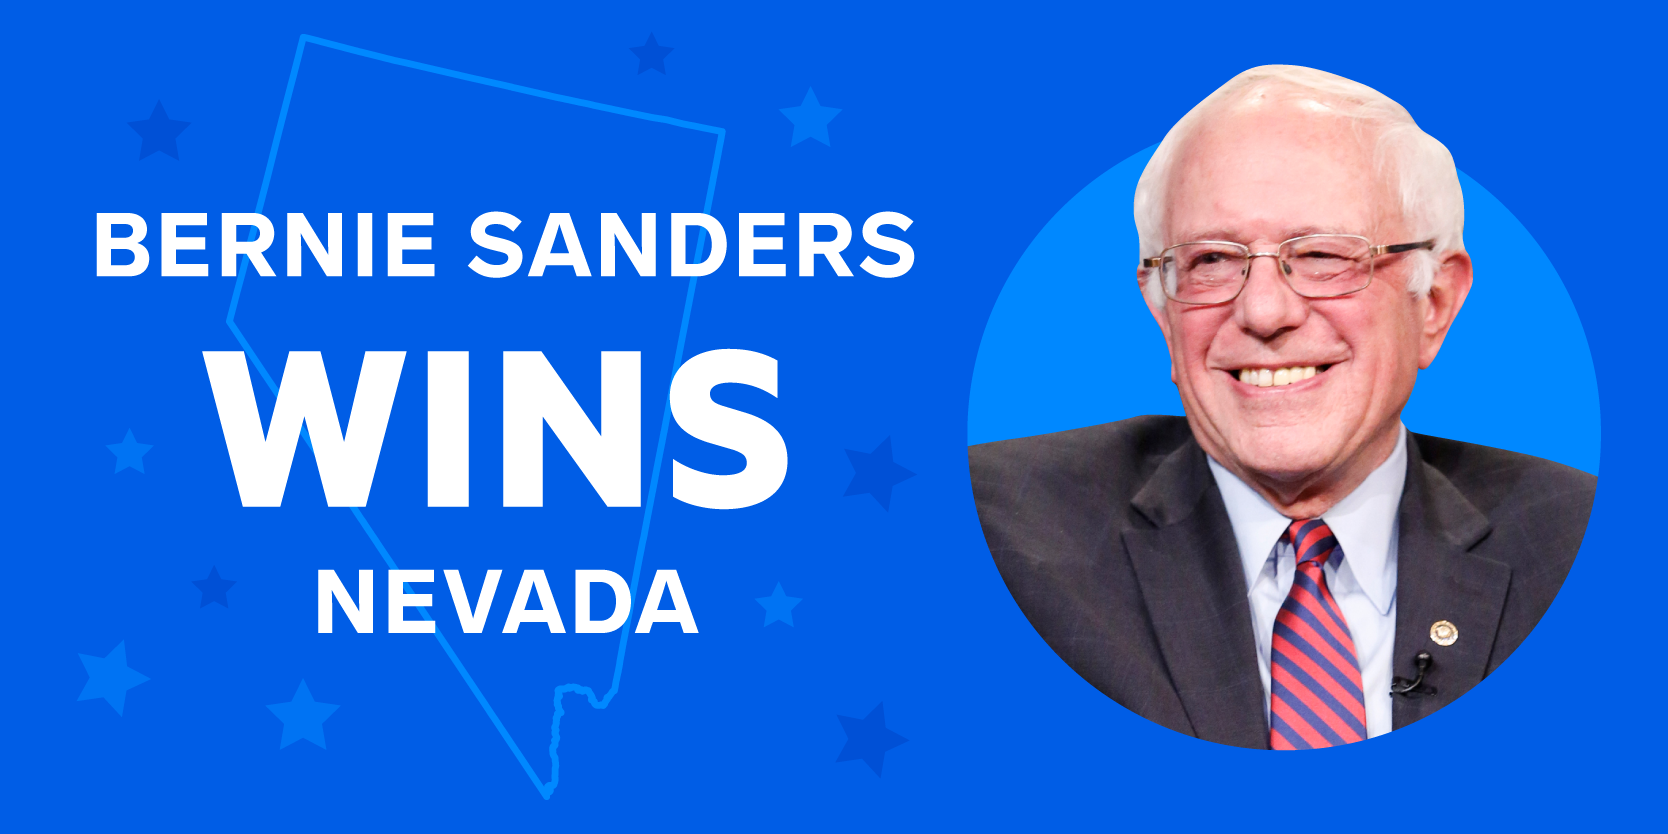 RESULTS: Bernie Sanders wins the Nevada caucus, follow the full vote count and delegate race here